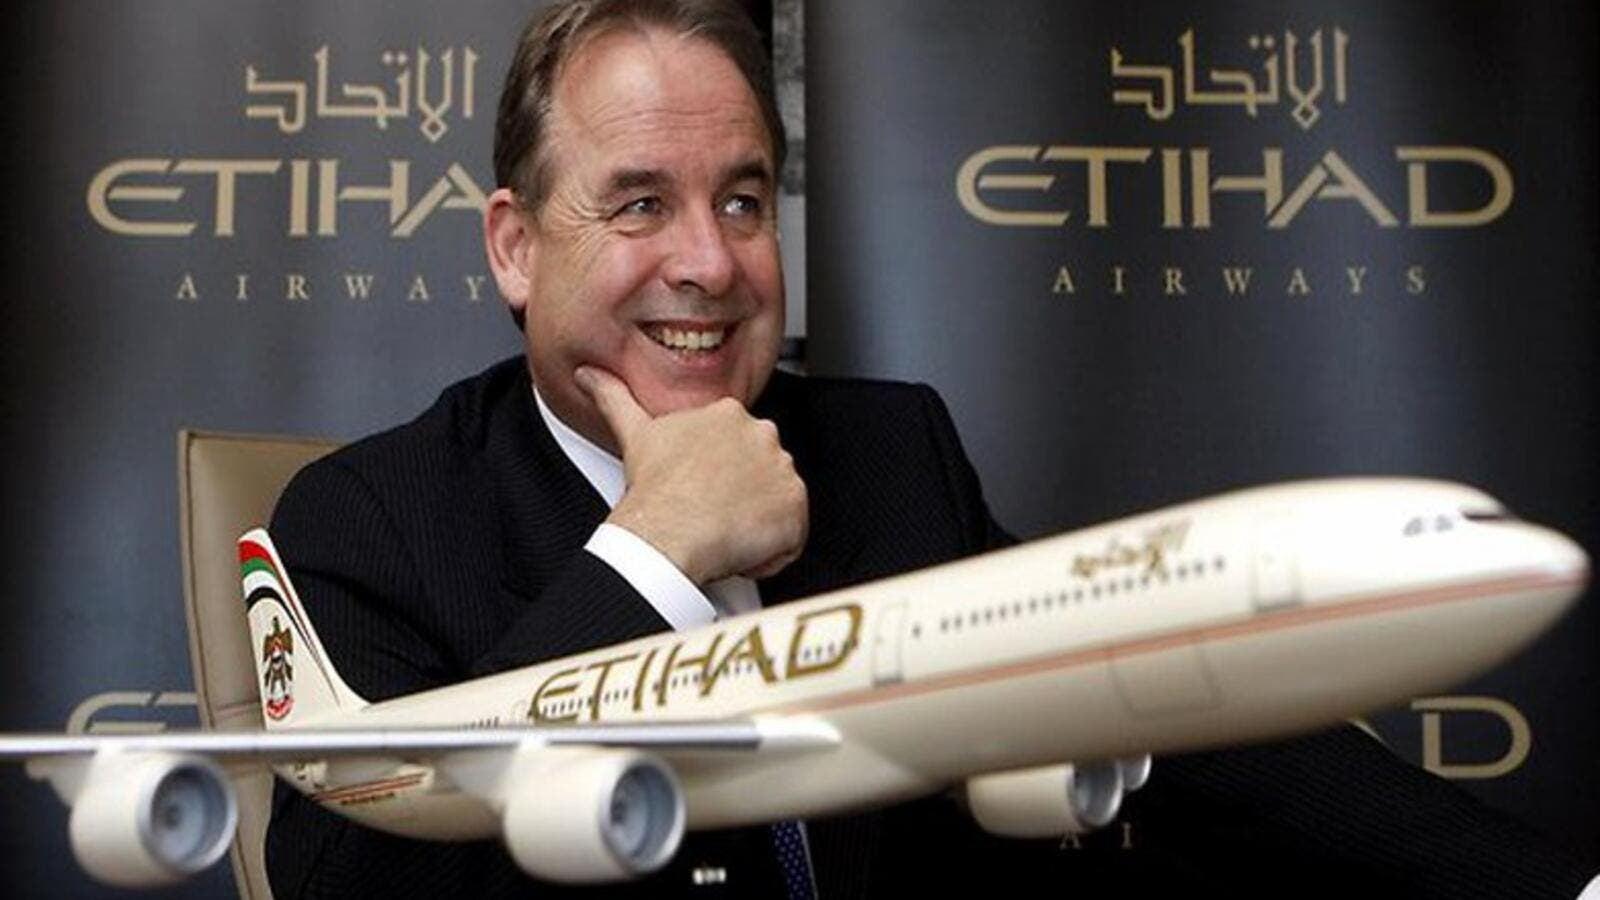 The Australian CEO oversaw rapid growth of Etihad Airways, including the development of seven airline equity partnerships. (File photo)